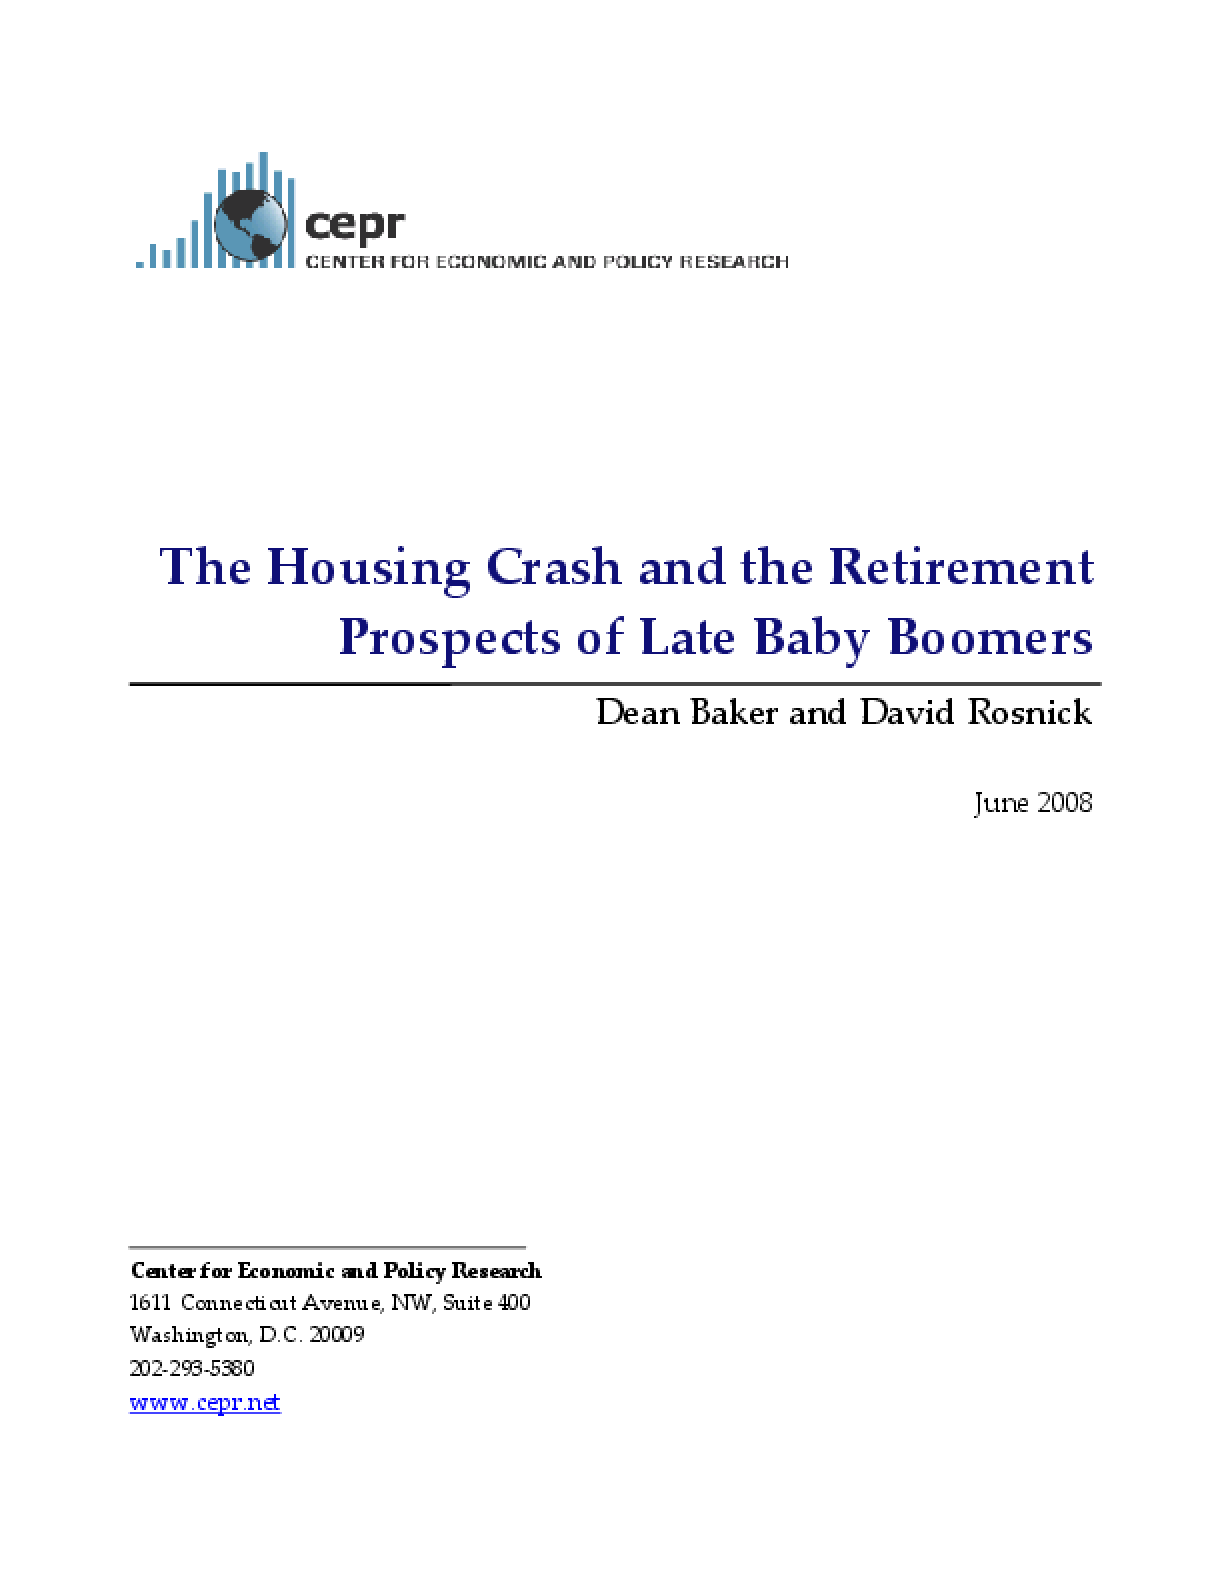 The Housing Crash and the Retirement Prospects of Late Baby Boomers